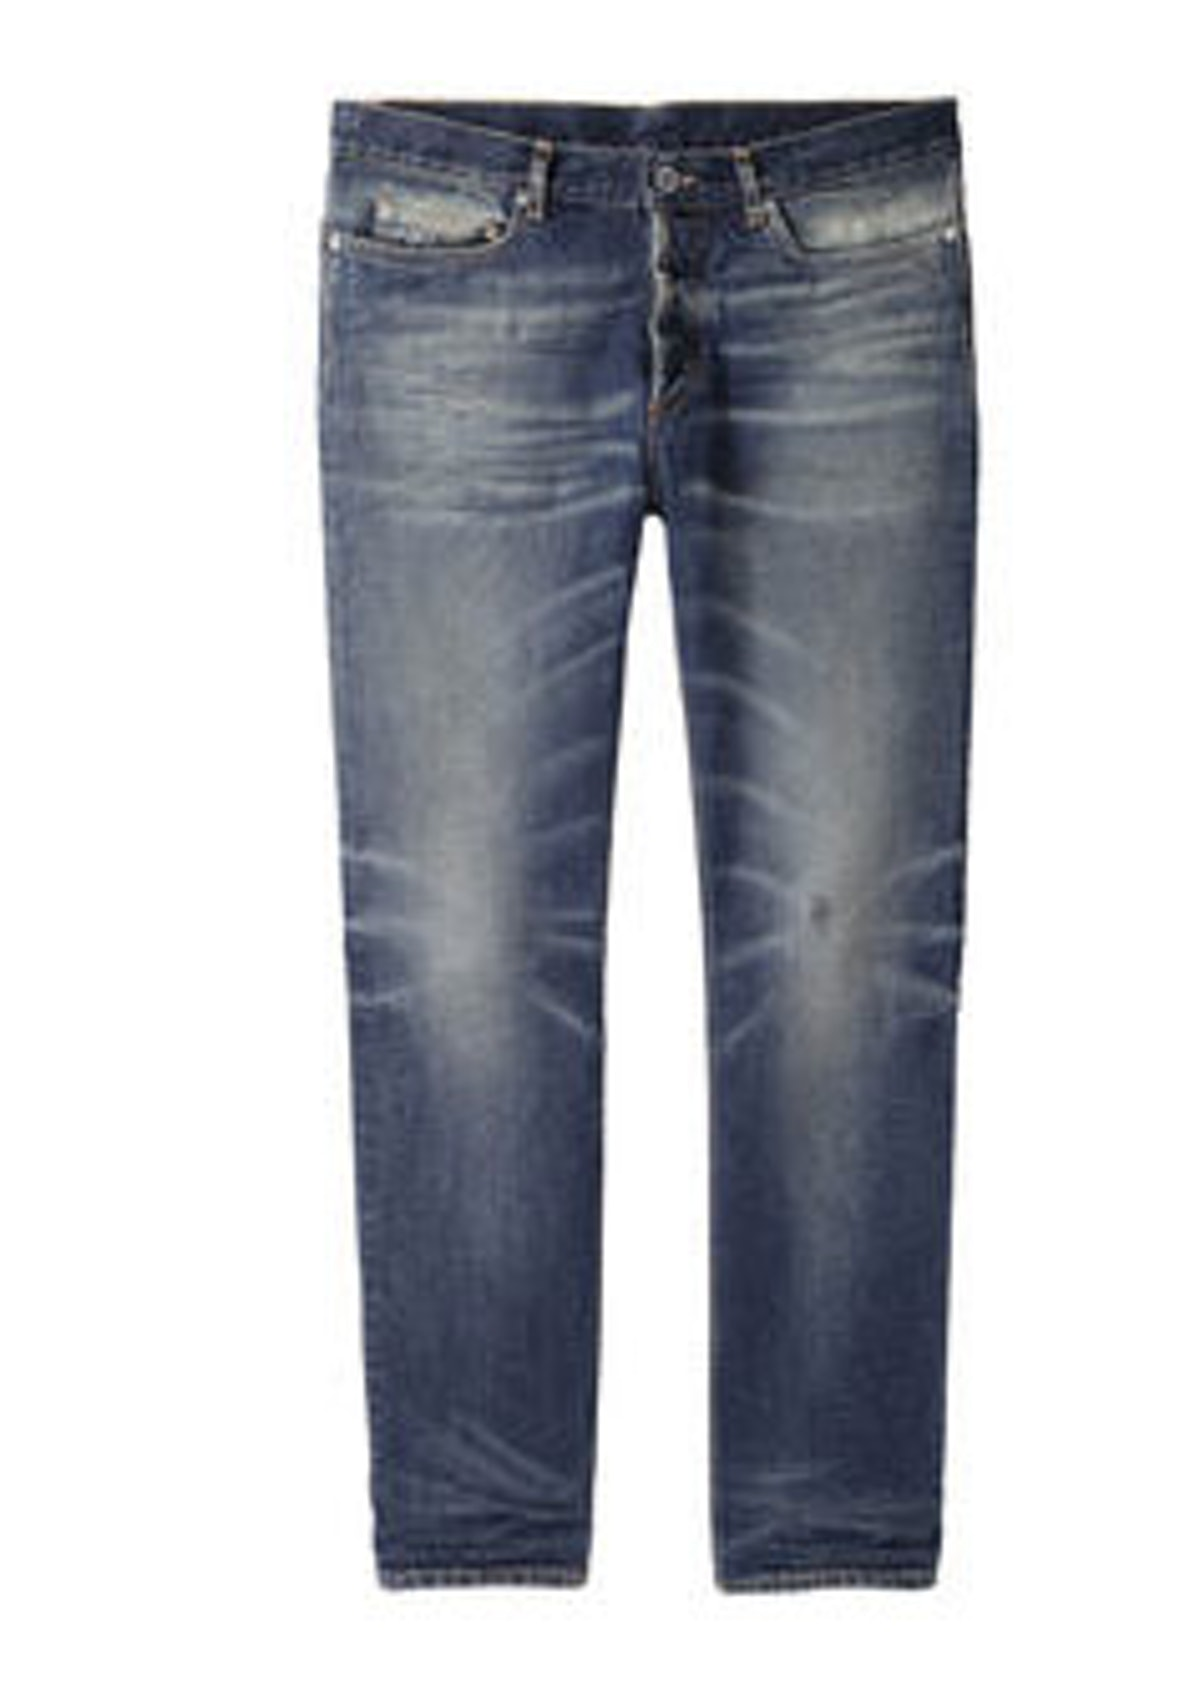 I have Edie Parker designer Brett Heyman to thank for my obsession with Golden Goose jeans, which ar...